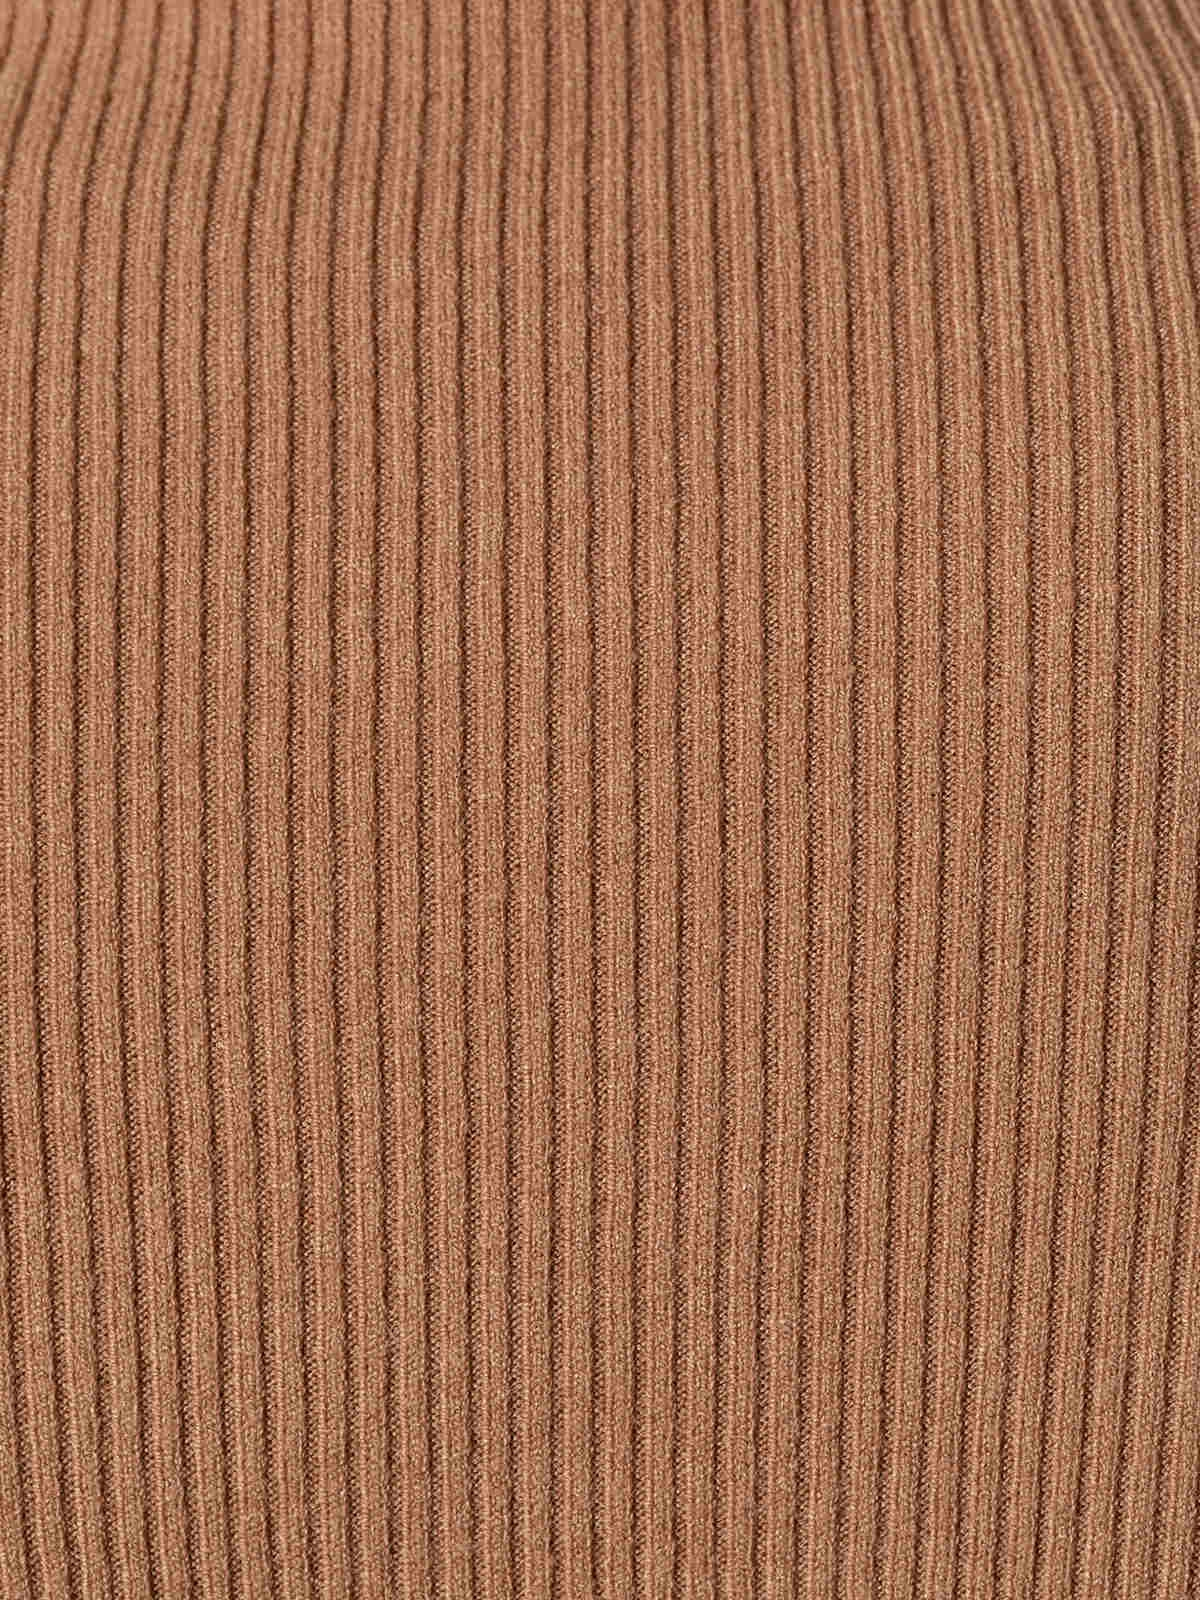 Jersey mujer canale cuello vuelto Camel